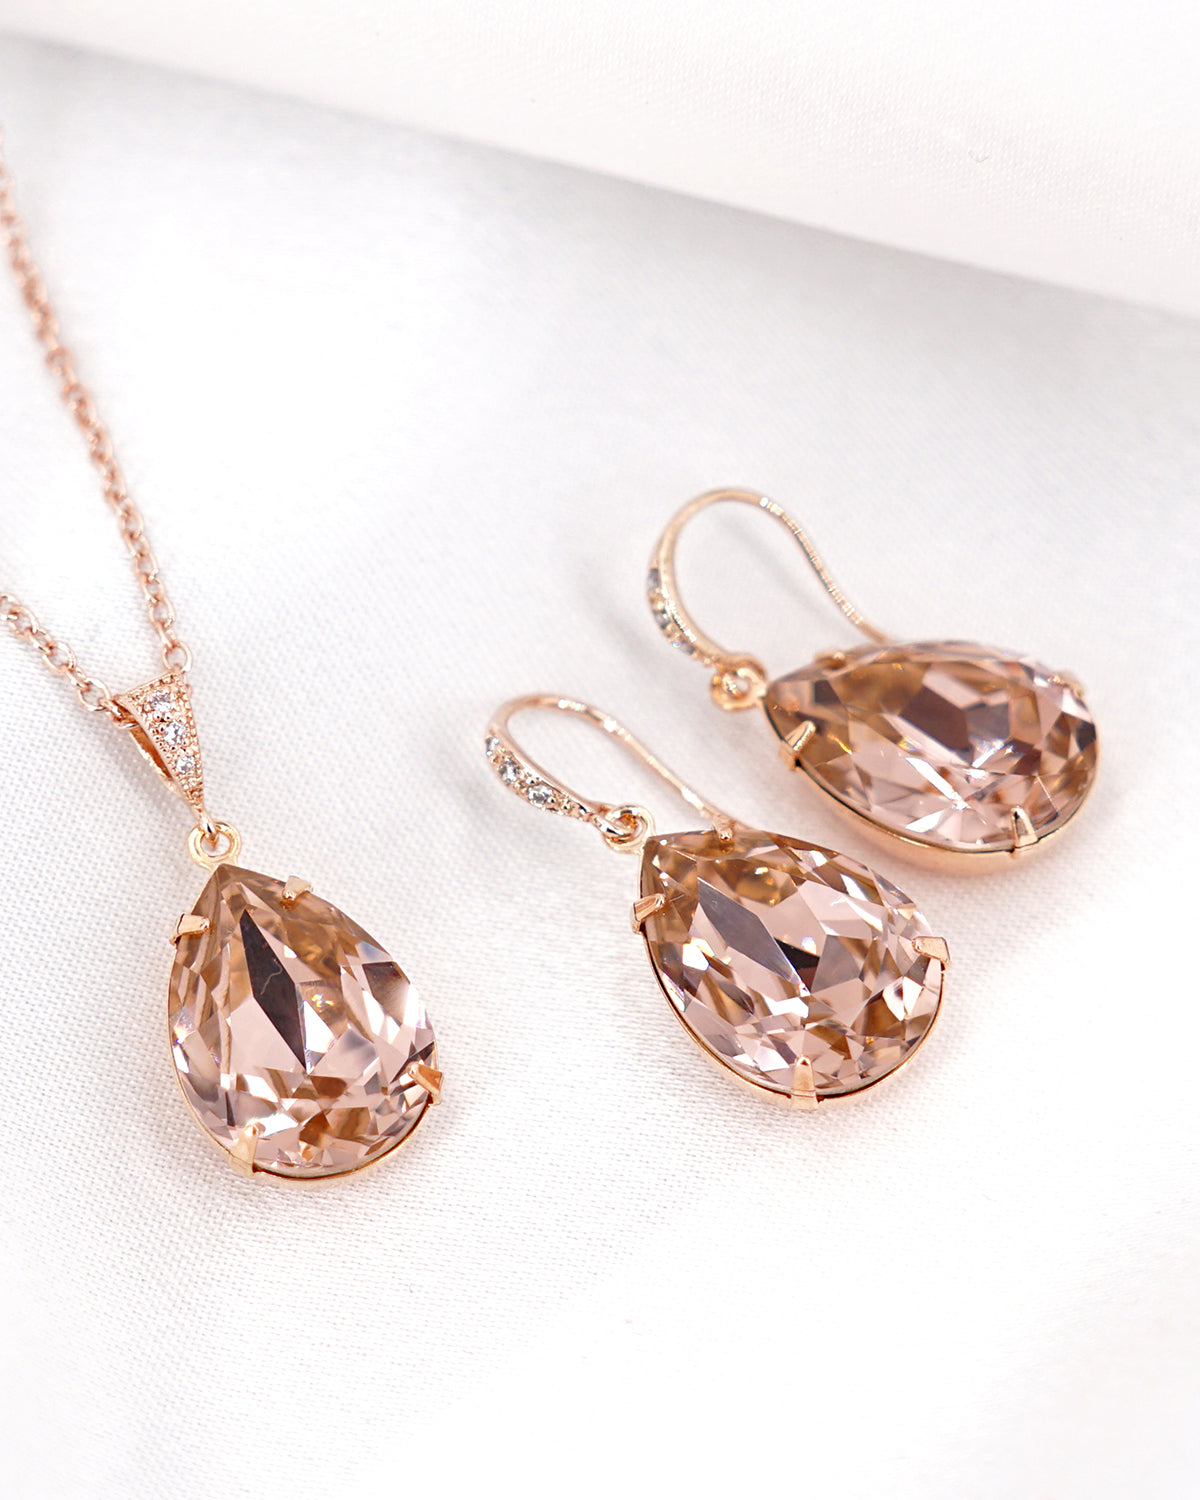 Rose Gold Crystal Earrings & Necklace | Wedding Bride Bridesmaids Gift